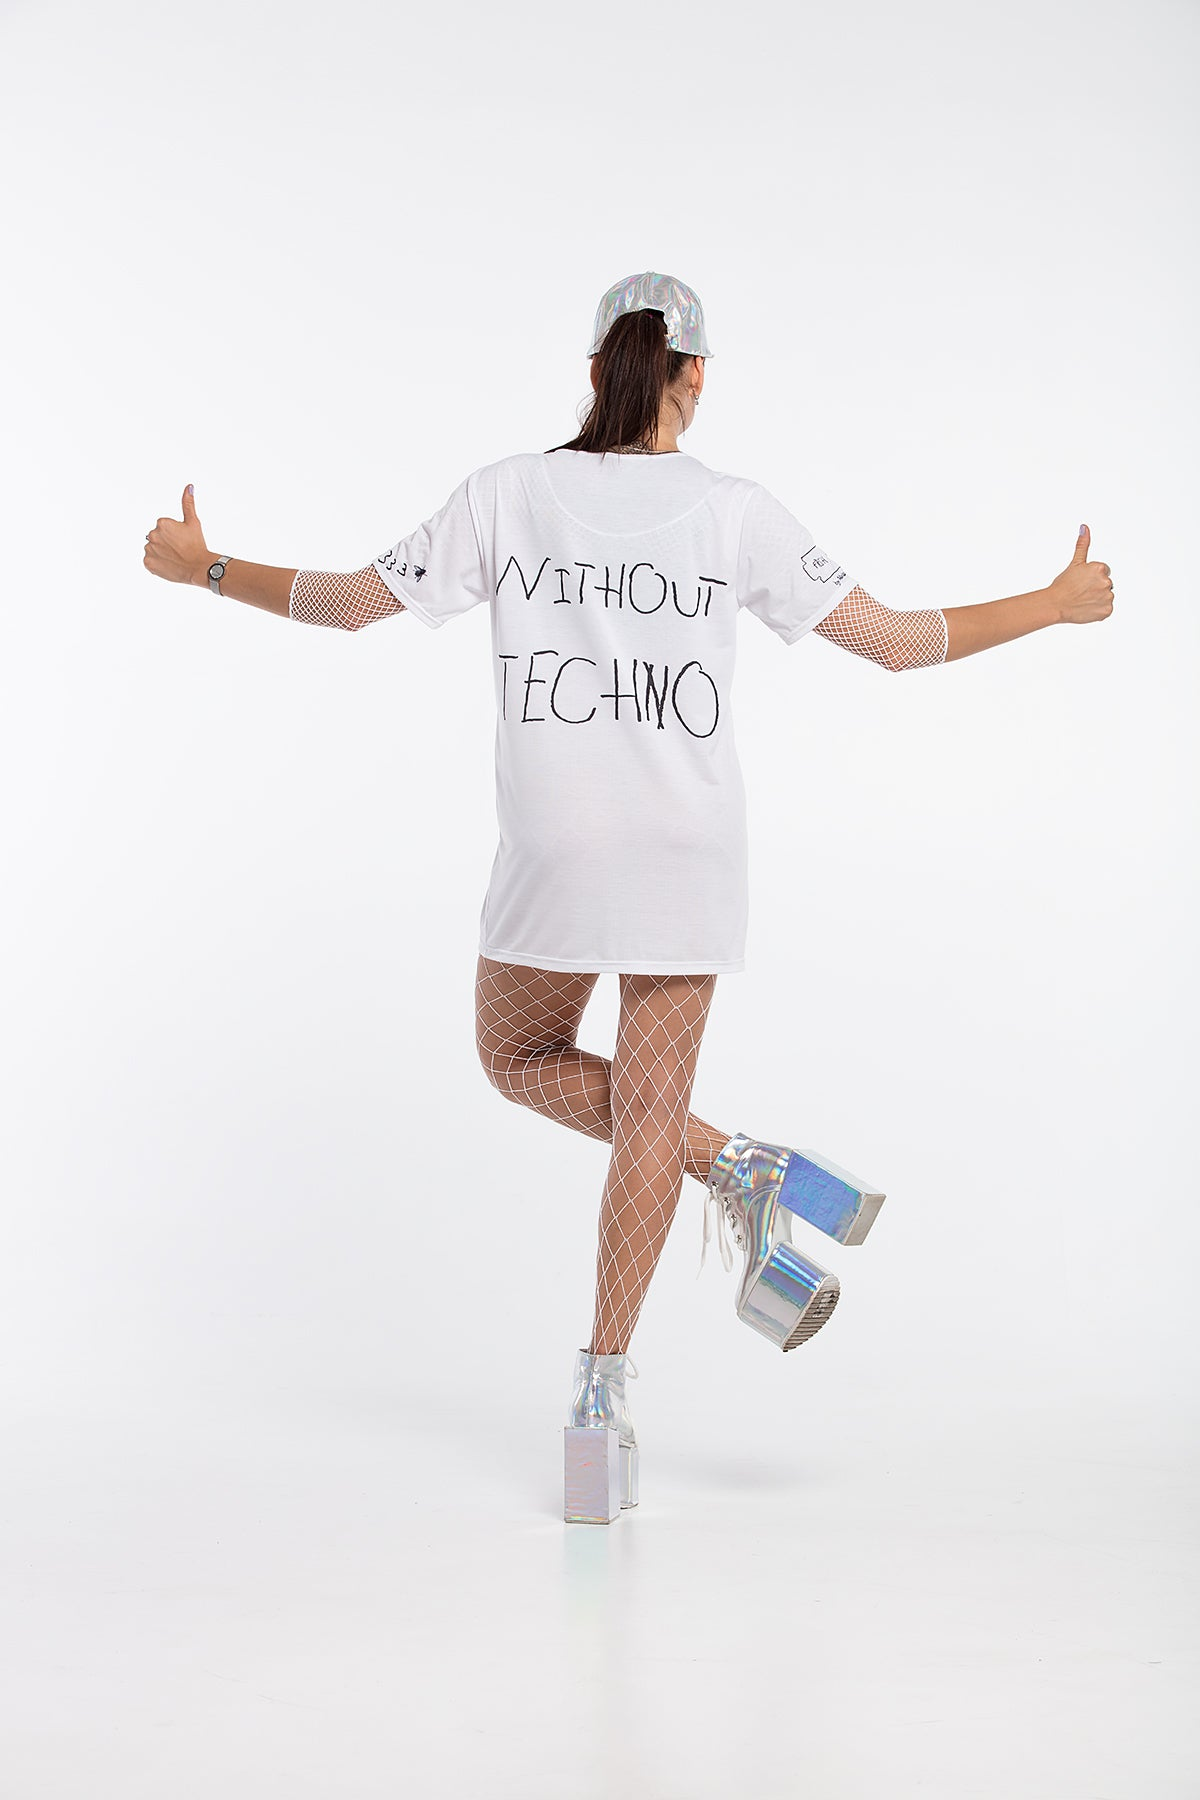 Party is Shit / Without Techno. - oversized T-shirt [White]